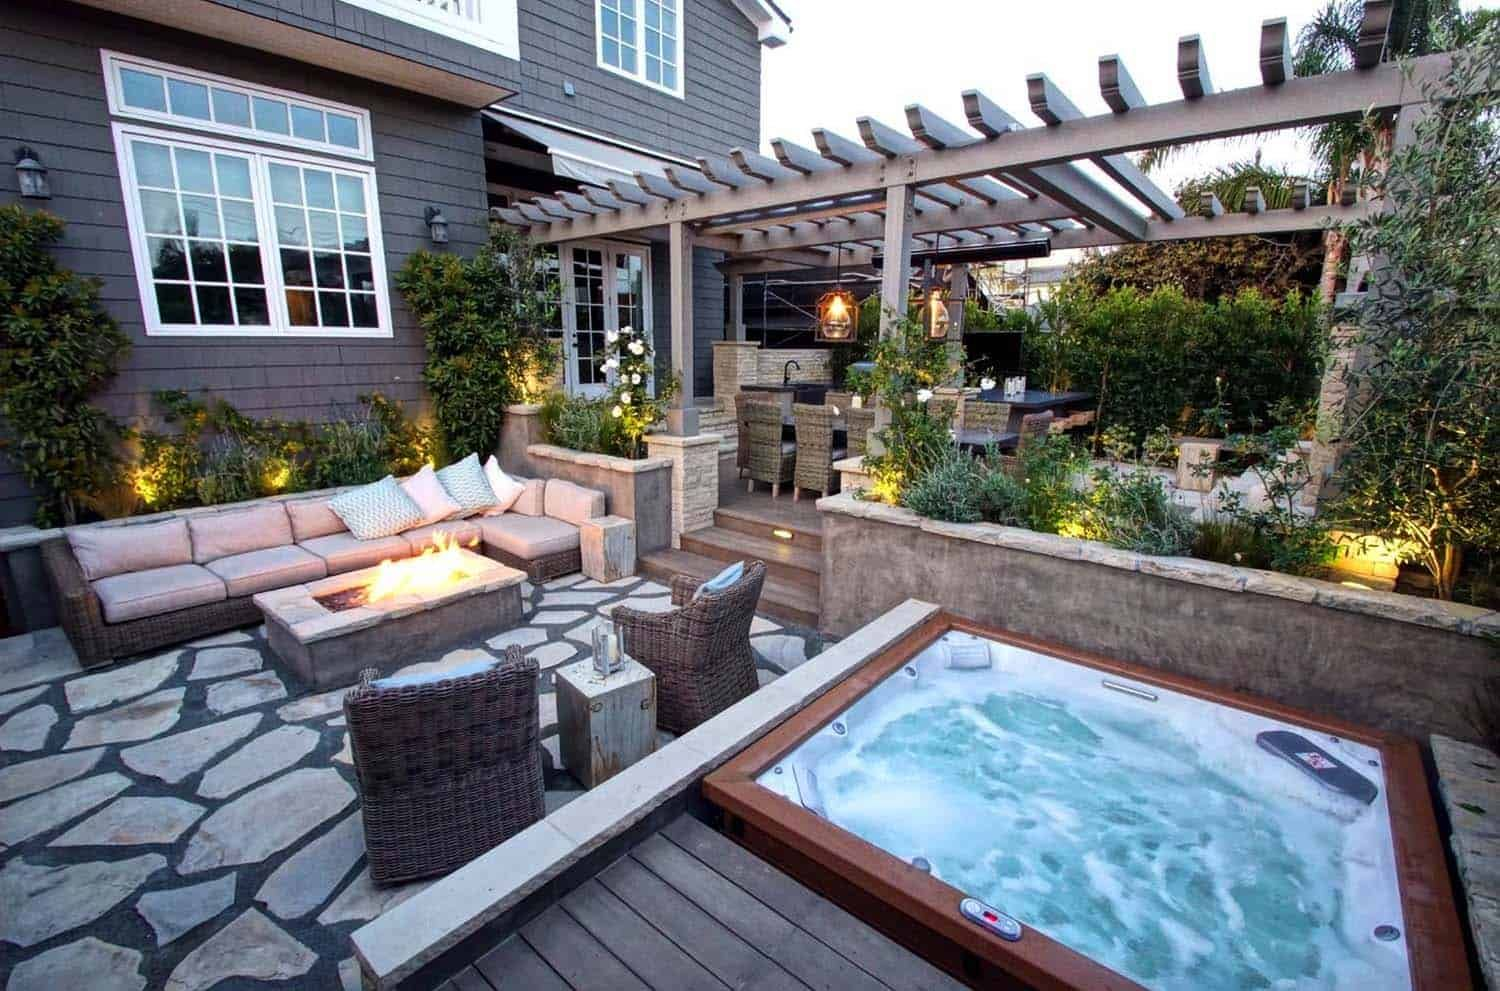 40 Outstanding Hot Tub Ideas To Create A Backyard Oasis Hot Tub